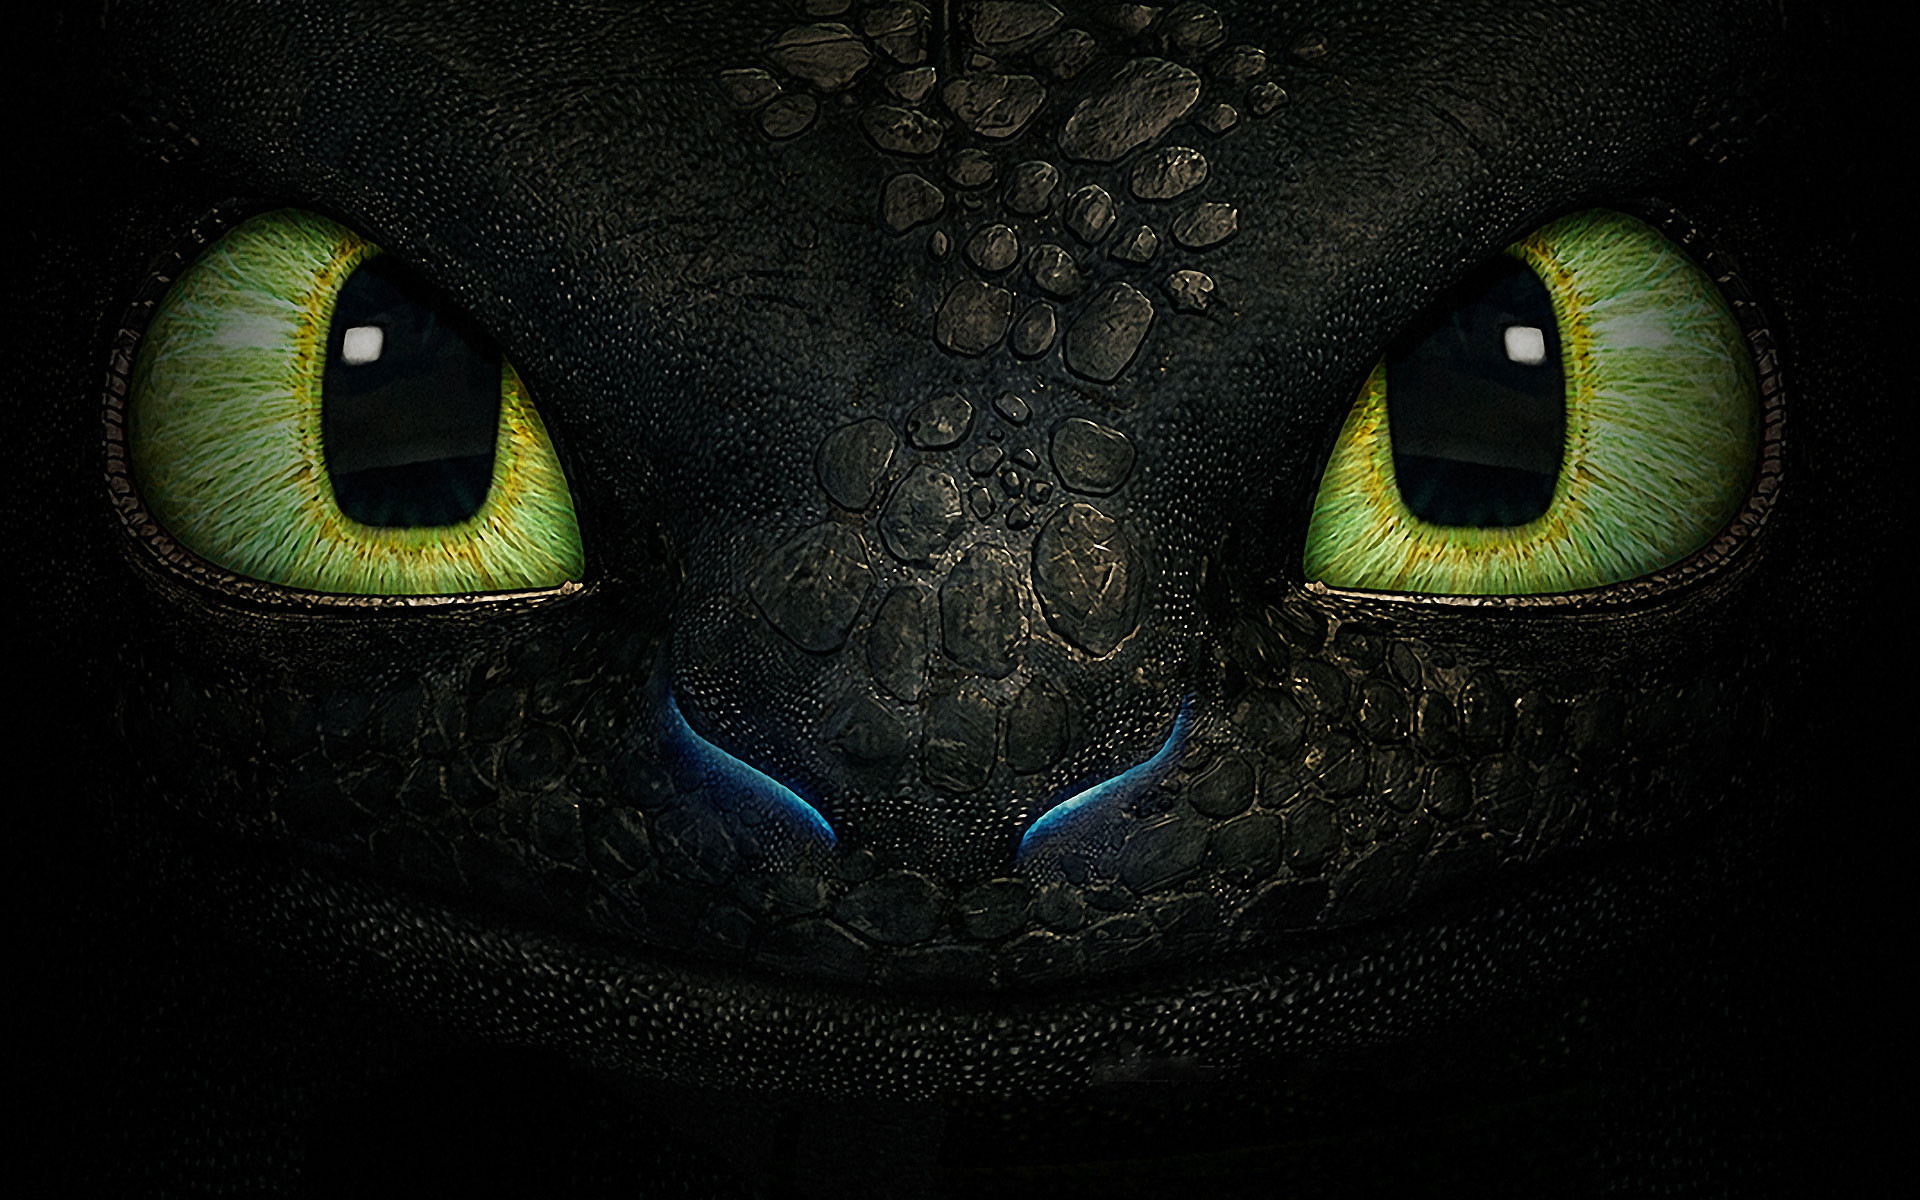 How to Train Your Dragon 2 toothless background hd